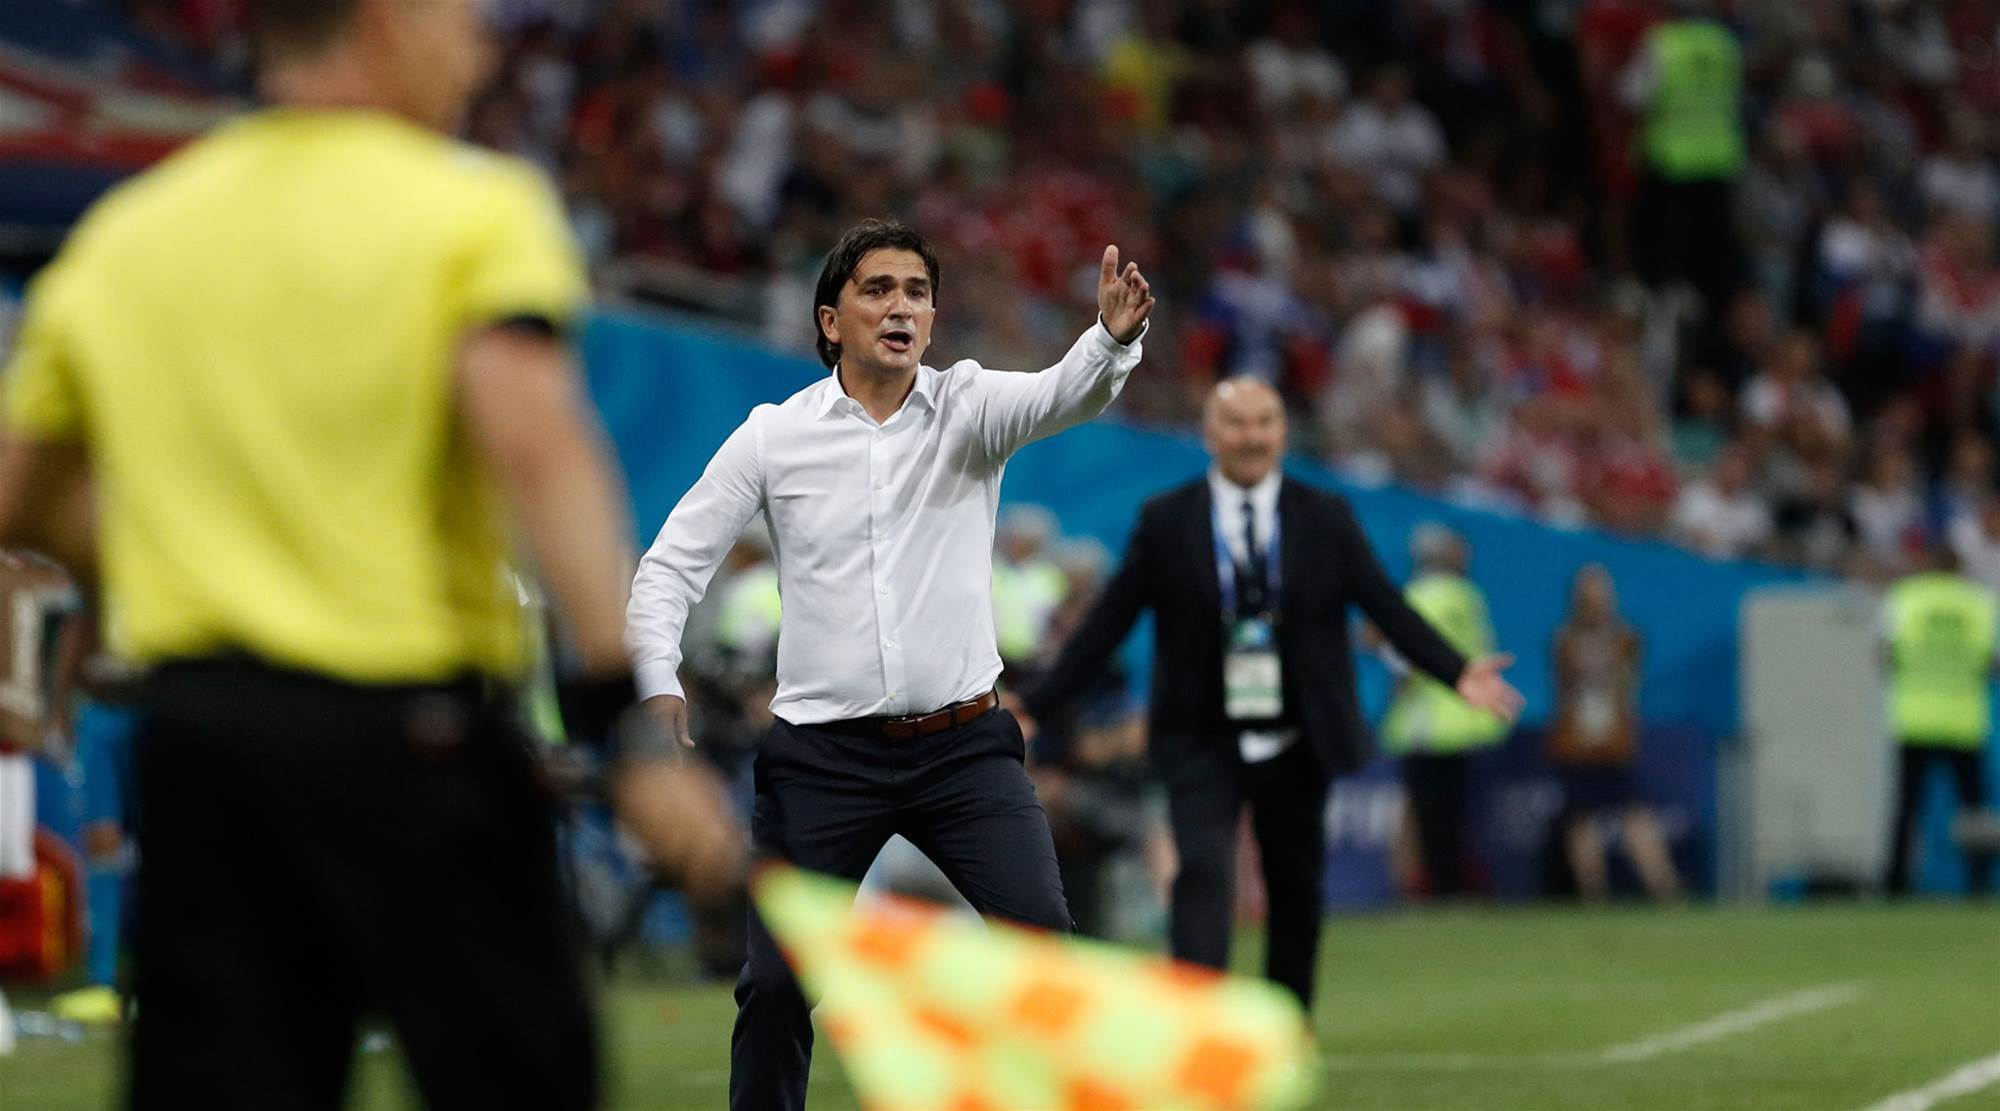 Croatia have 'some fuel left' for semi - coach